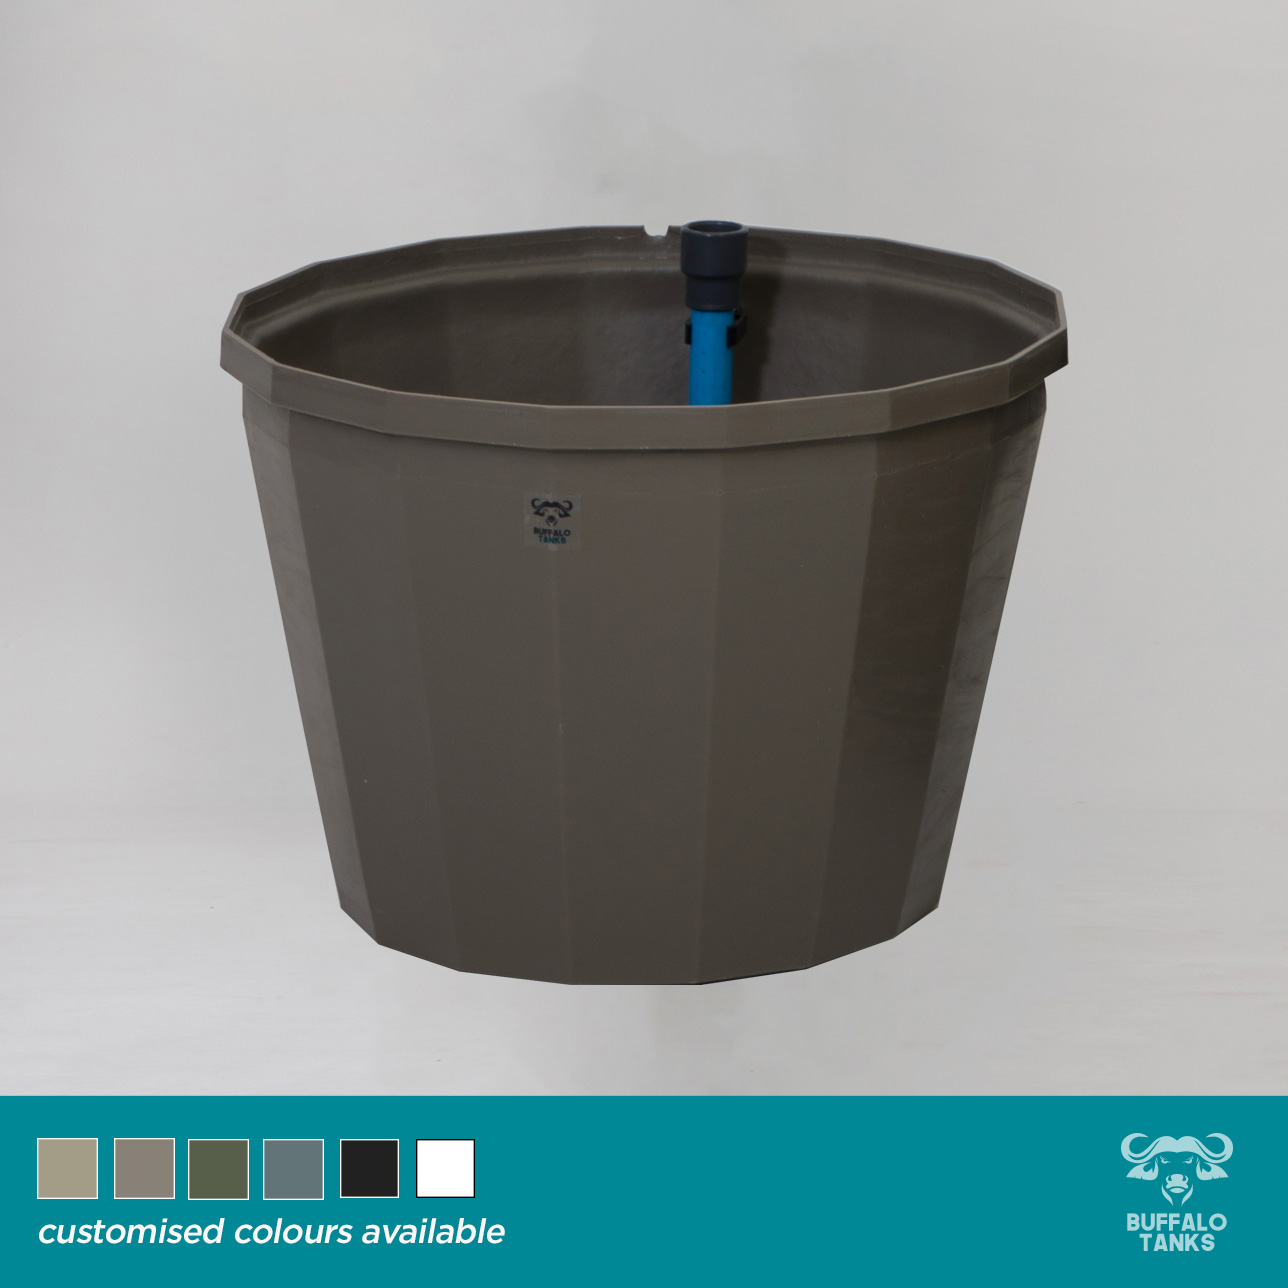 Buffalo Tanks Products - Buffalo Self Watering Pots